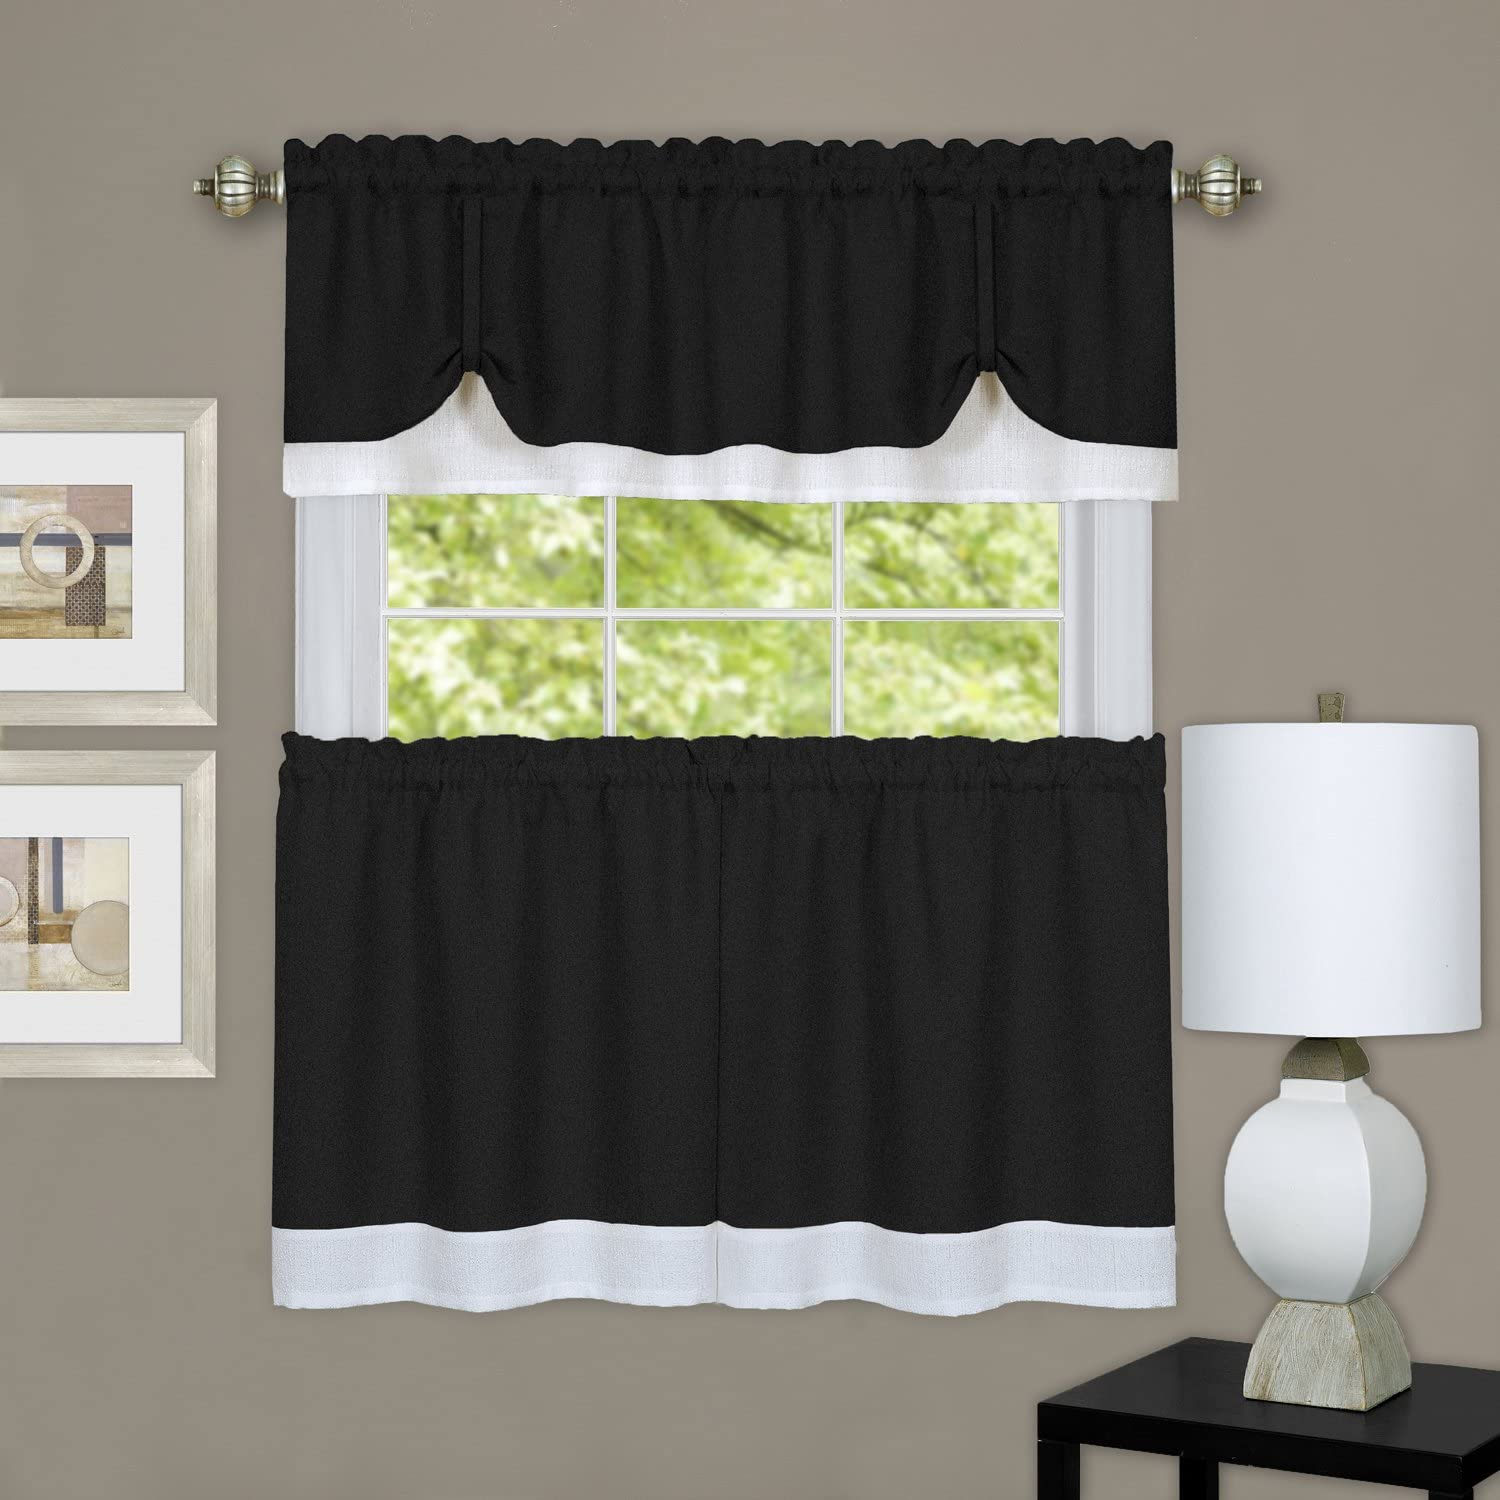 Darcy Window Curtain Tier & Valance Set 58x36/58x14, Black & White